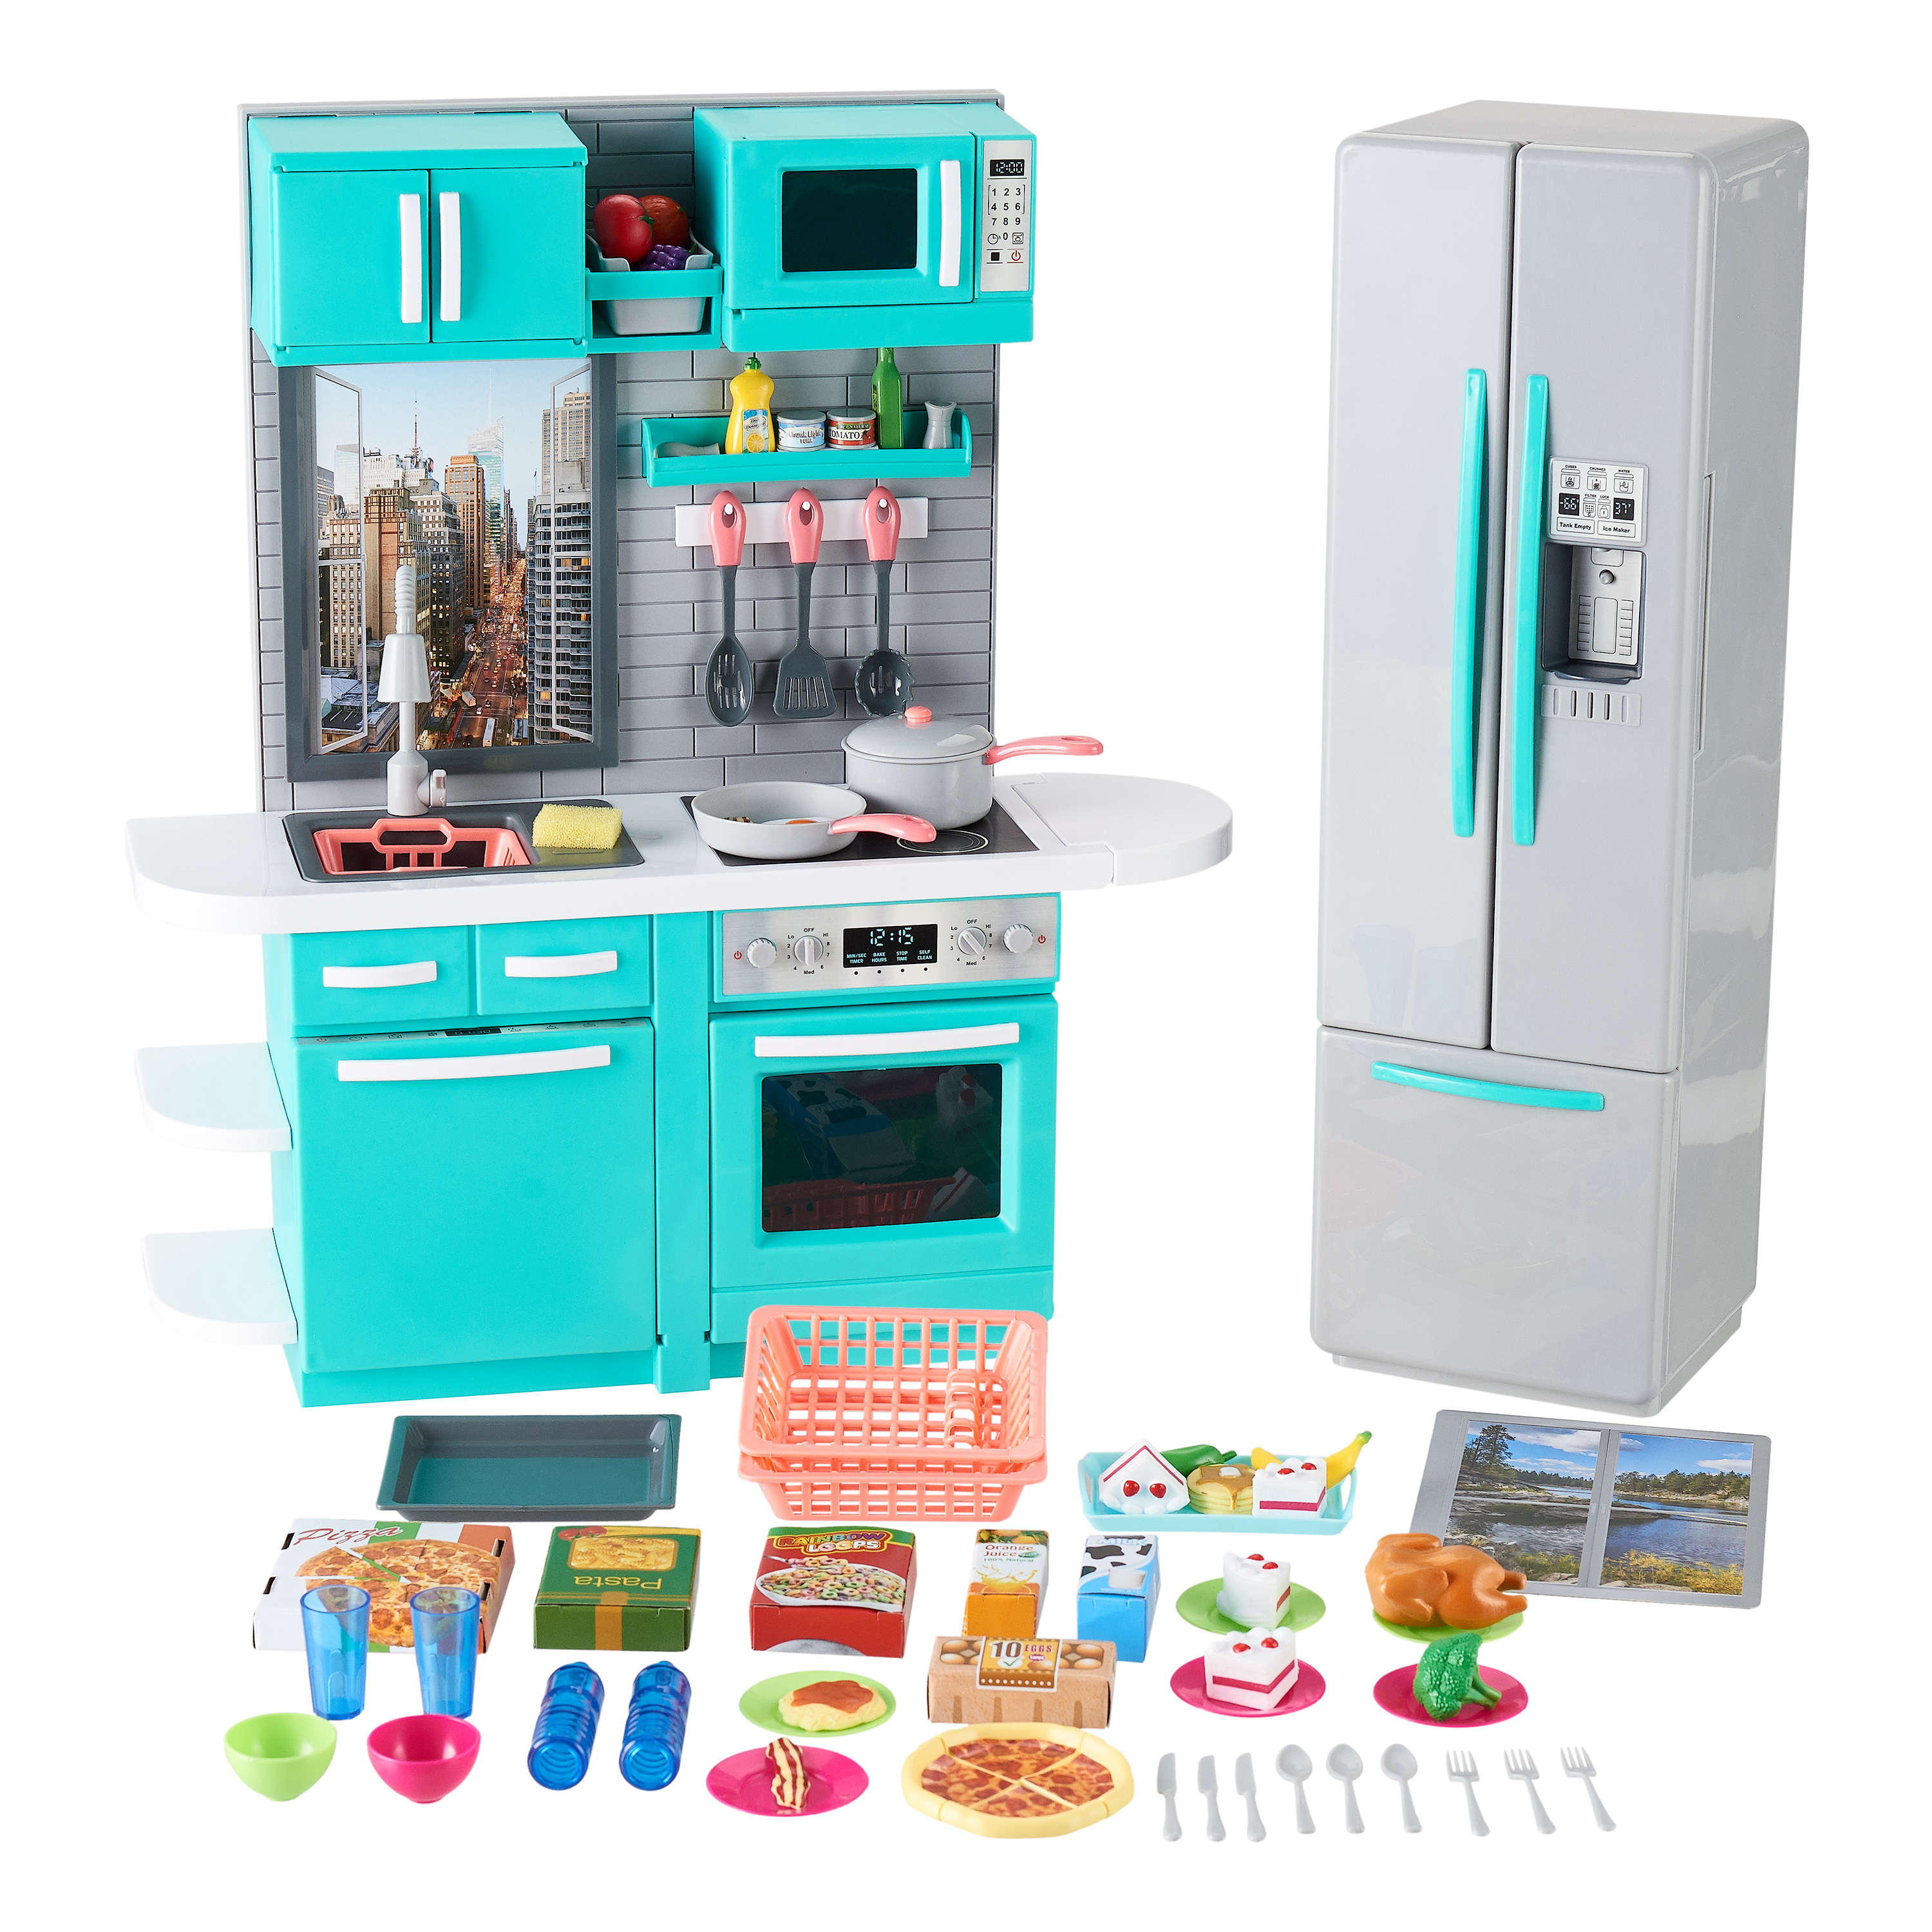 My Life As Kitchen Play Set for My Life As 18